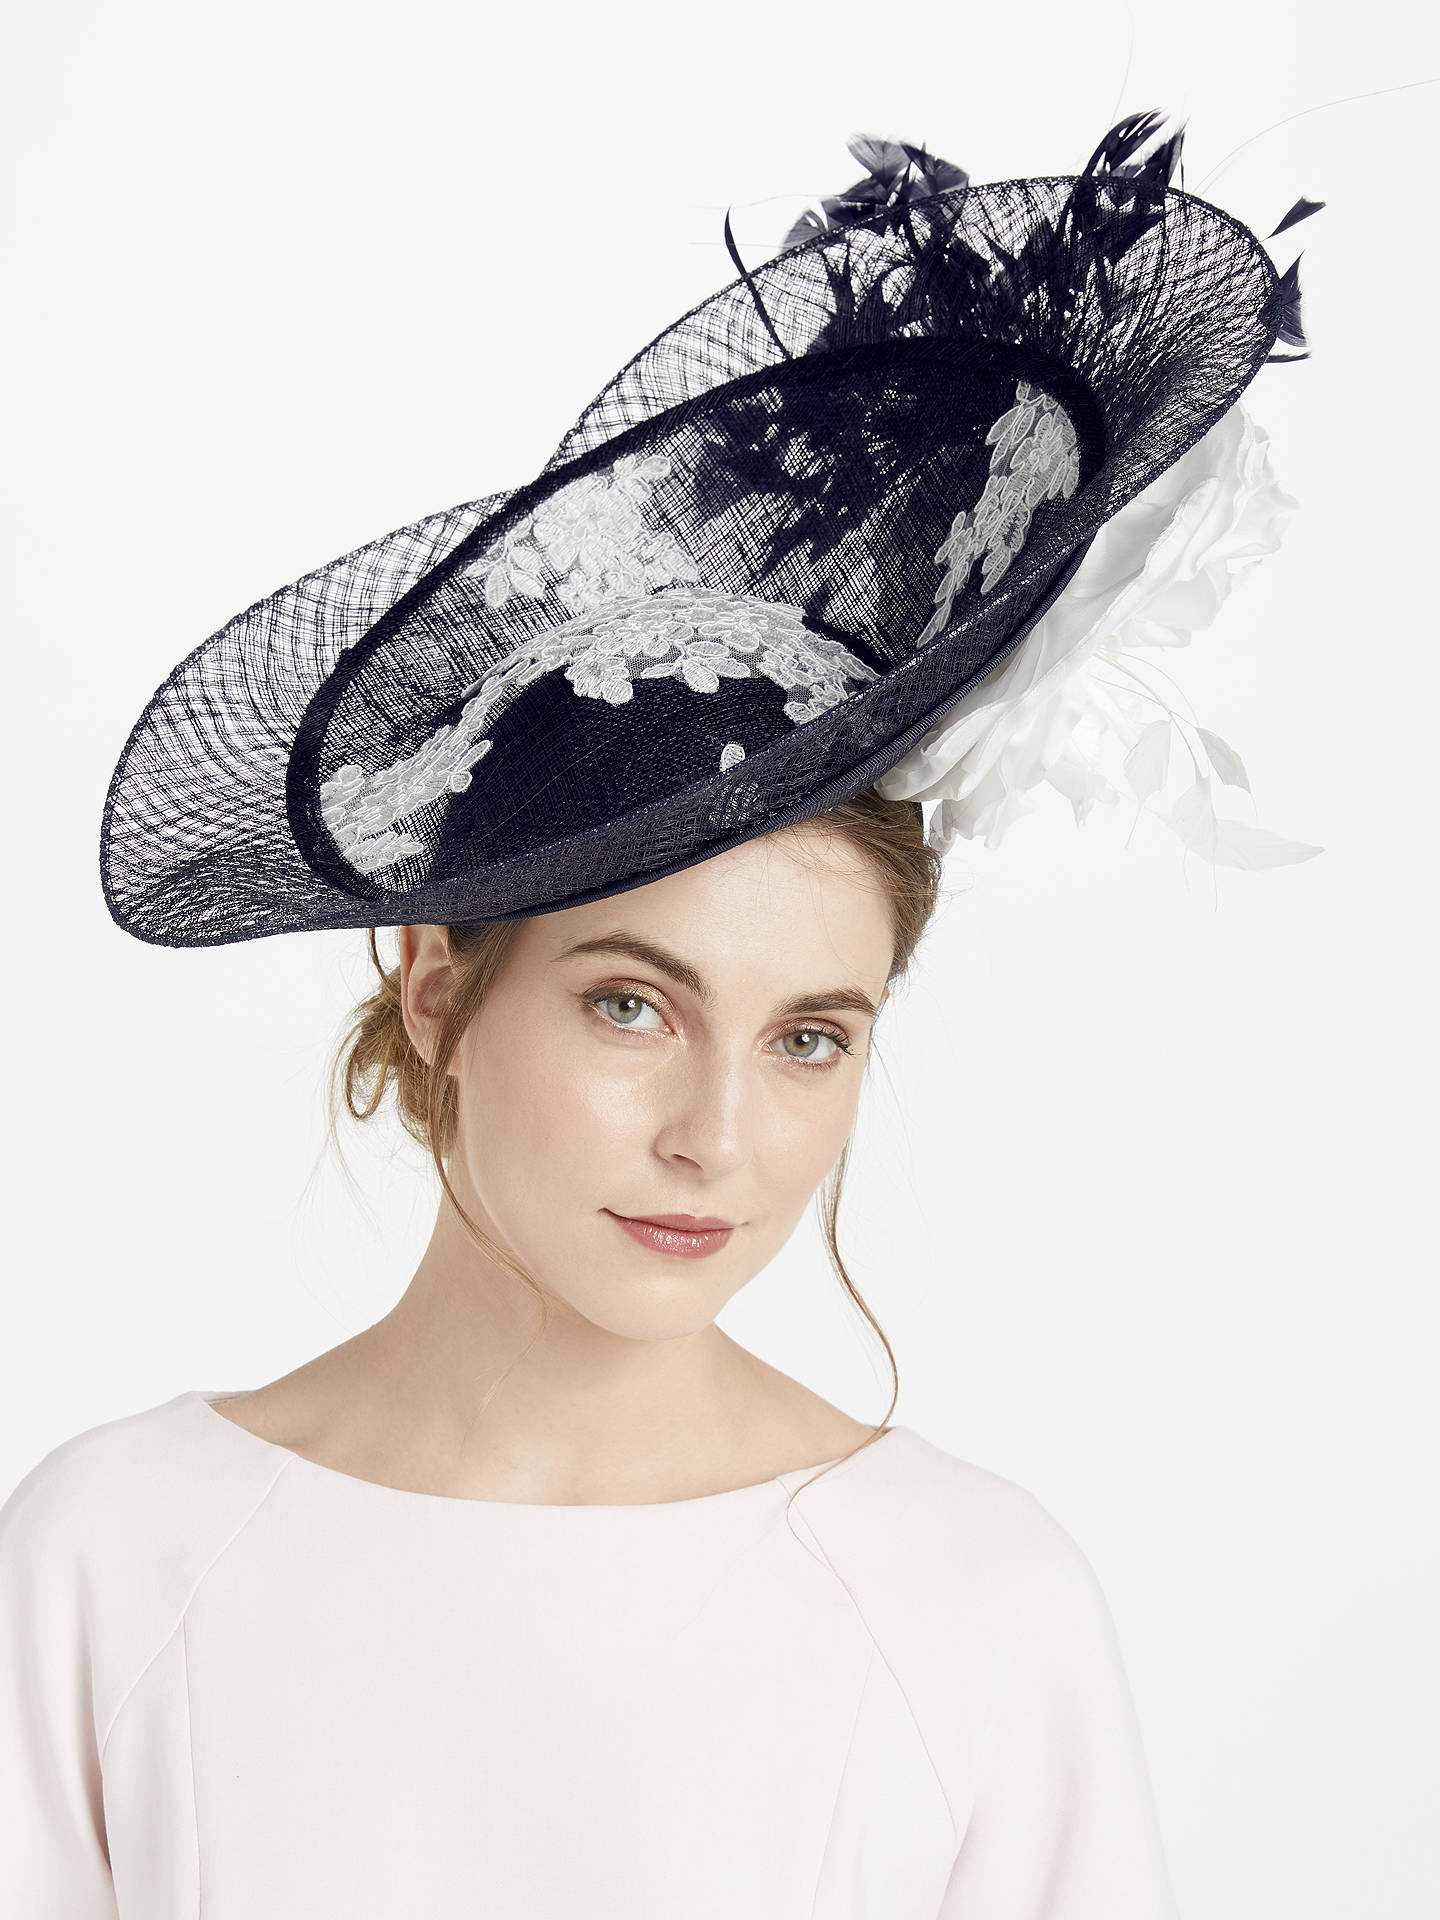 d630b6bb0dcd8 Buy Snoxells Joselyn Side Up Disc Occasion Hat, Navy/White Online at  johnlewis.